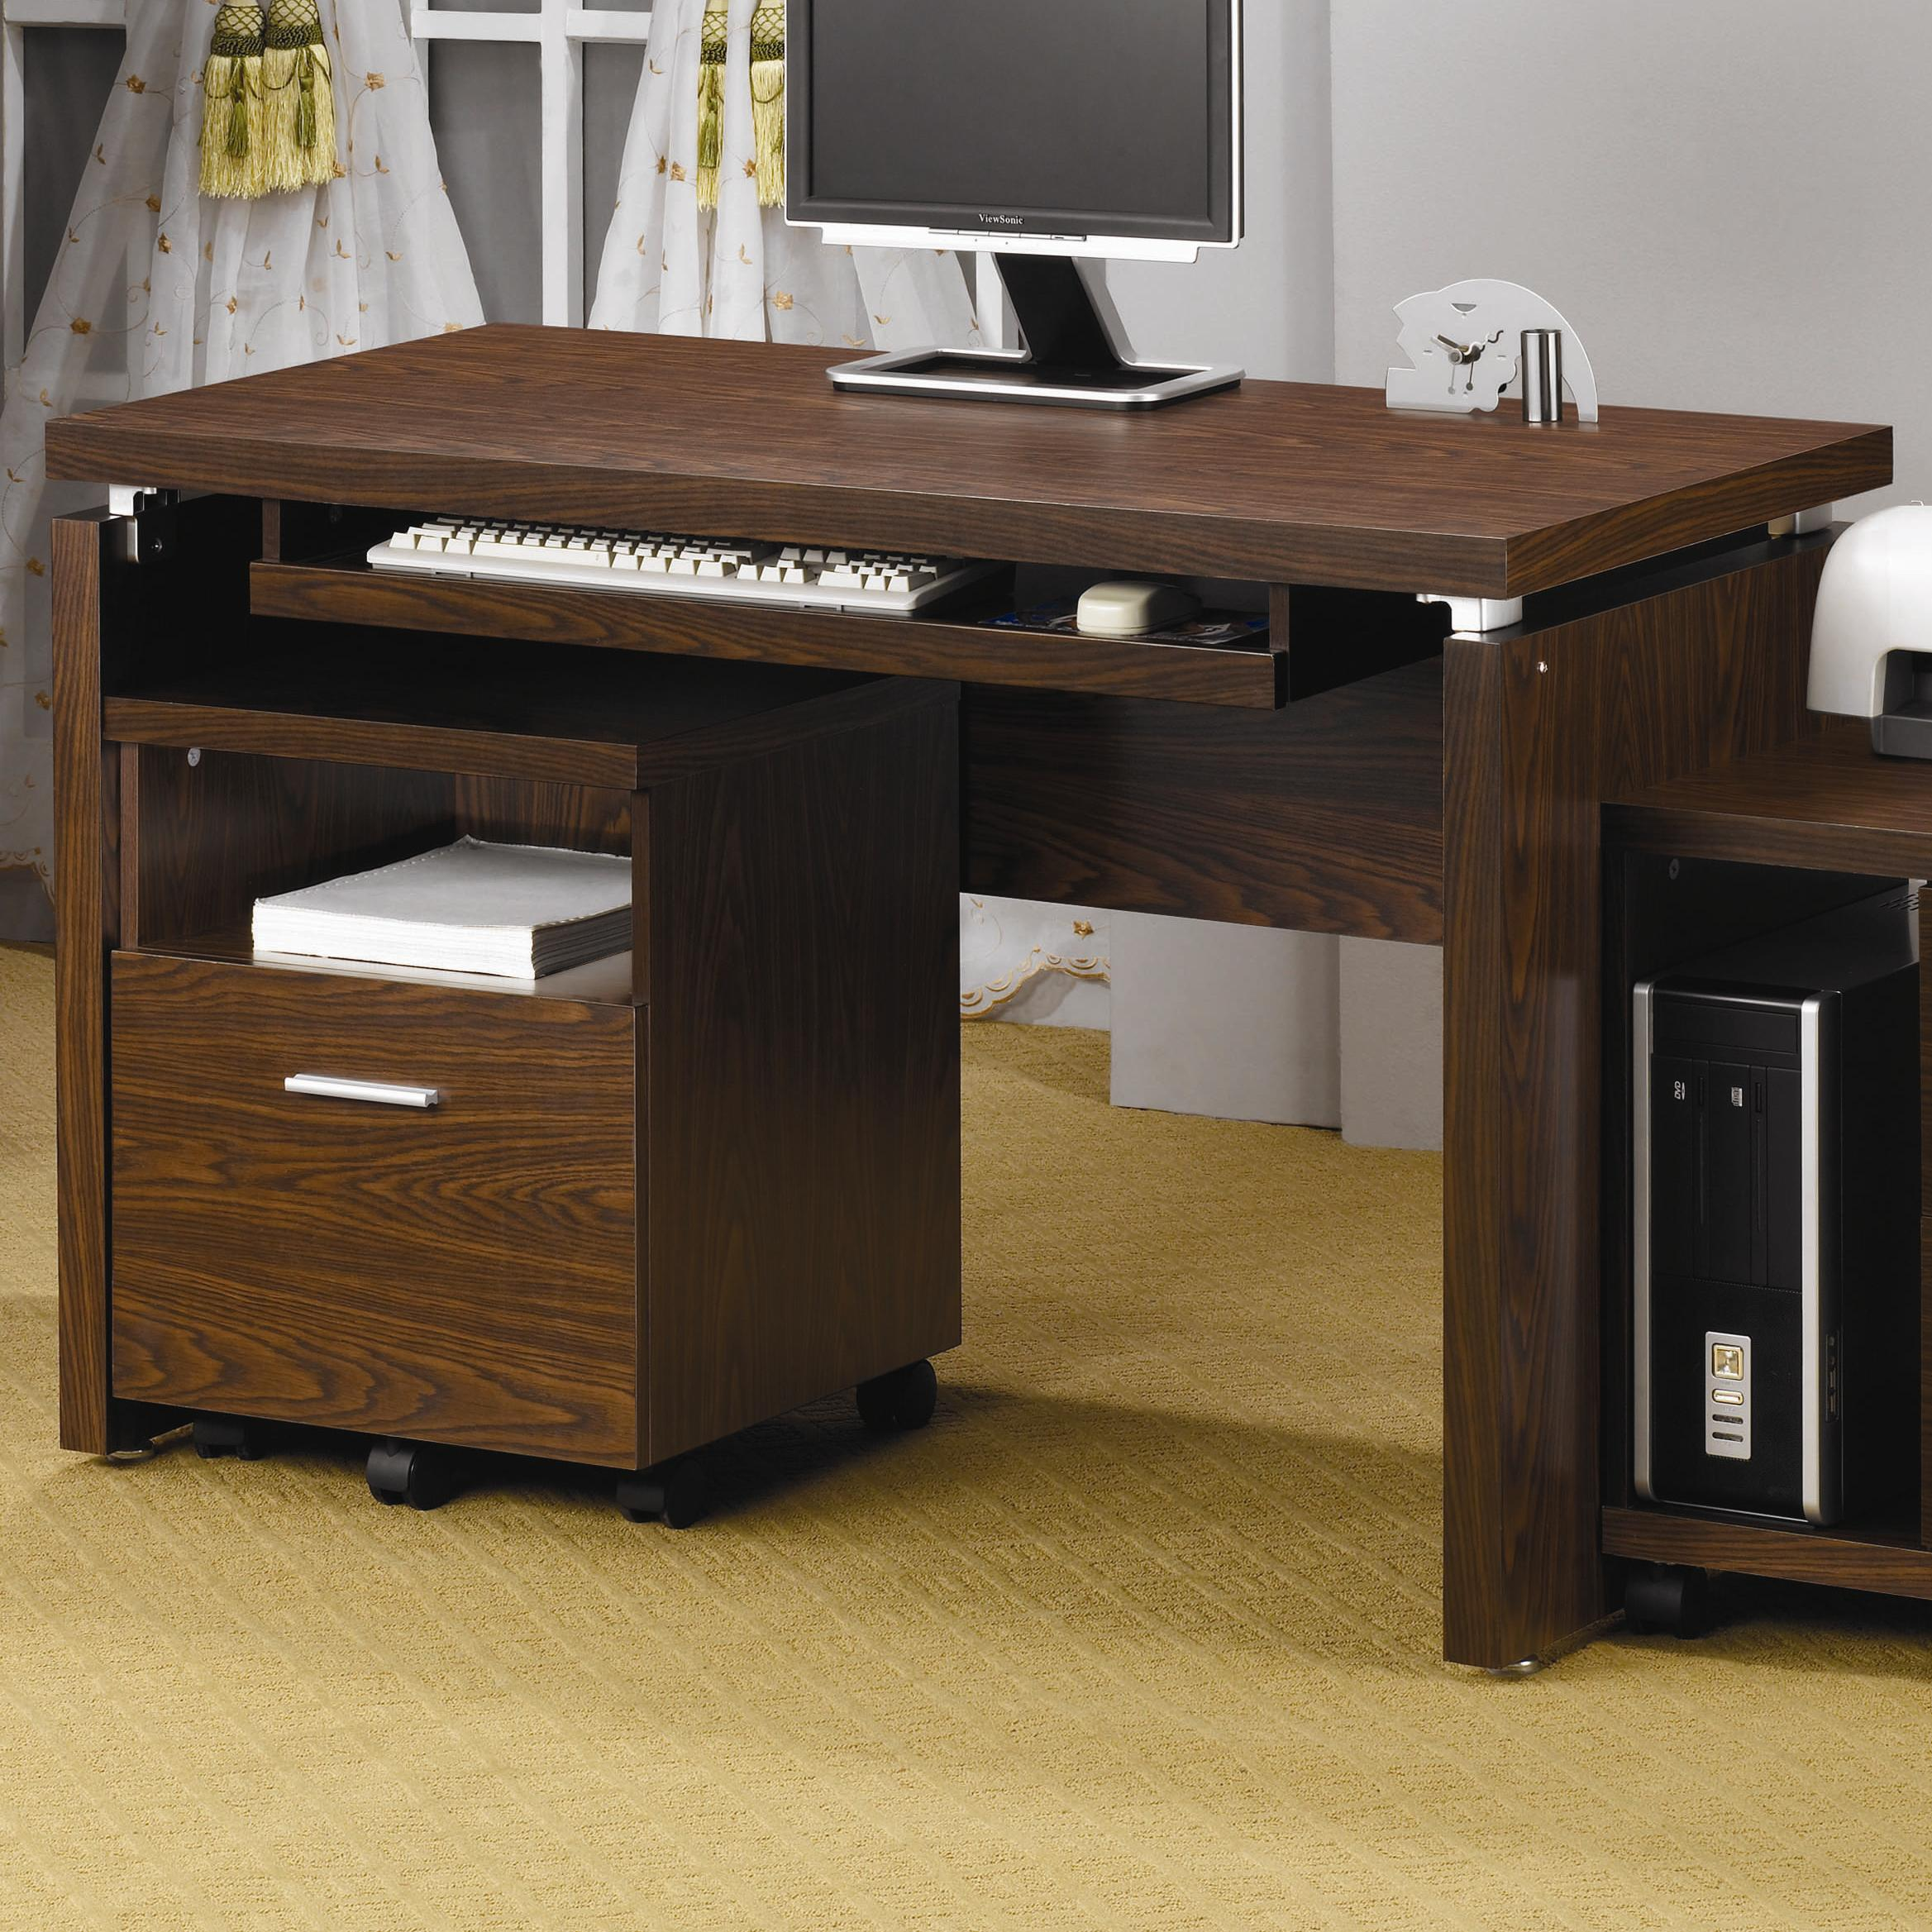 Peel Computer Desk by Coaster at Northeast Factory Direct